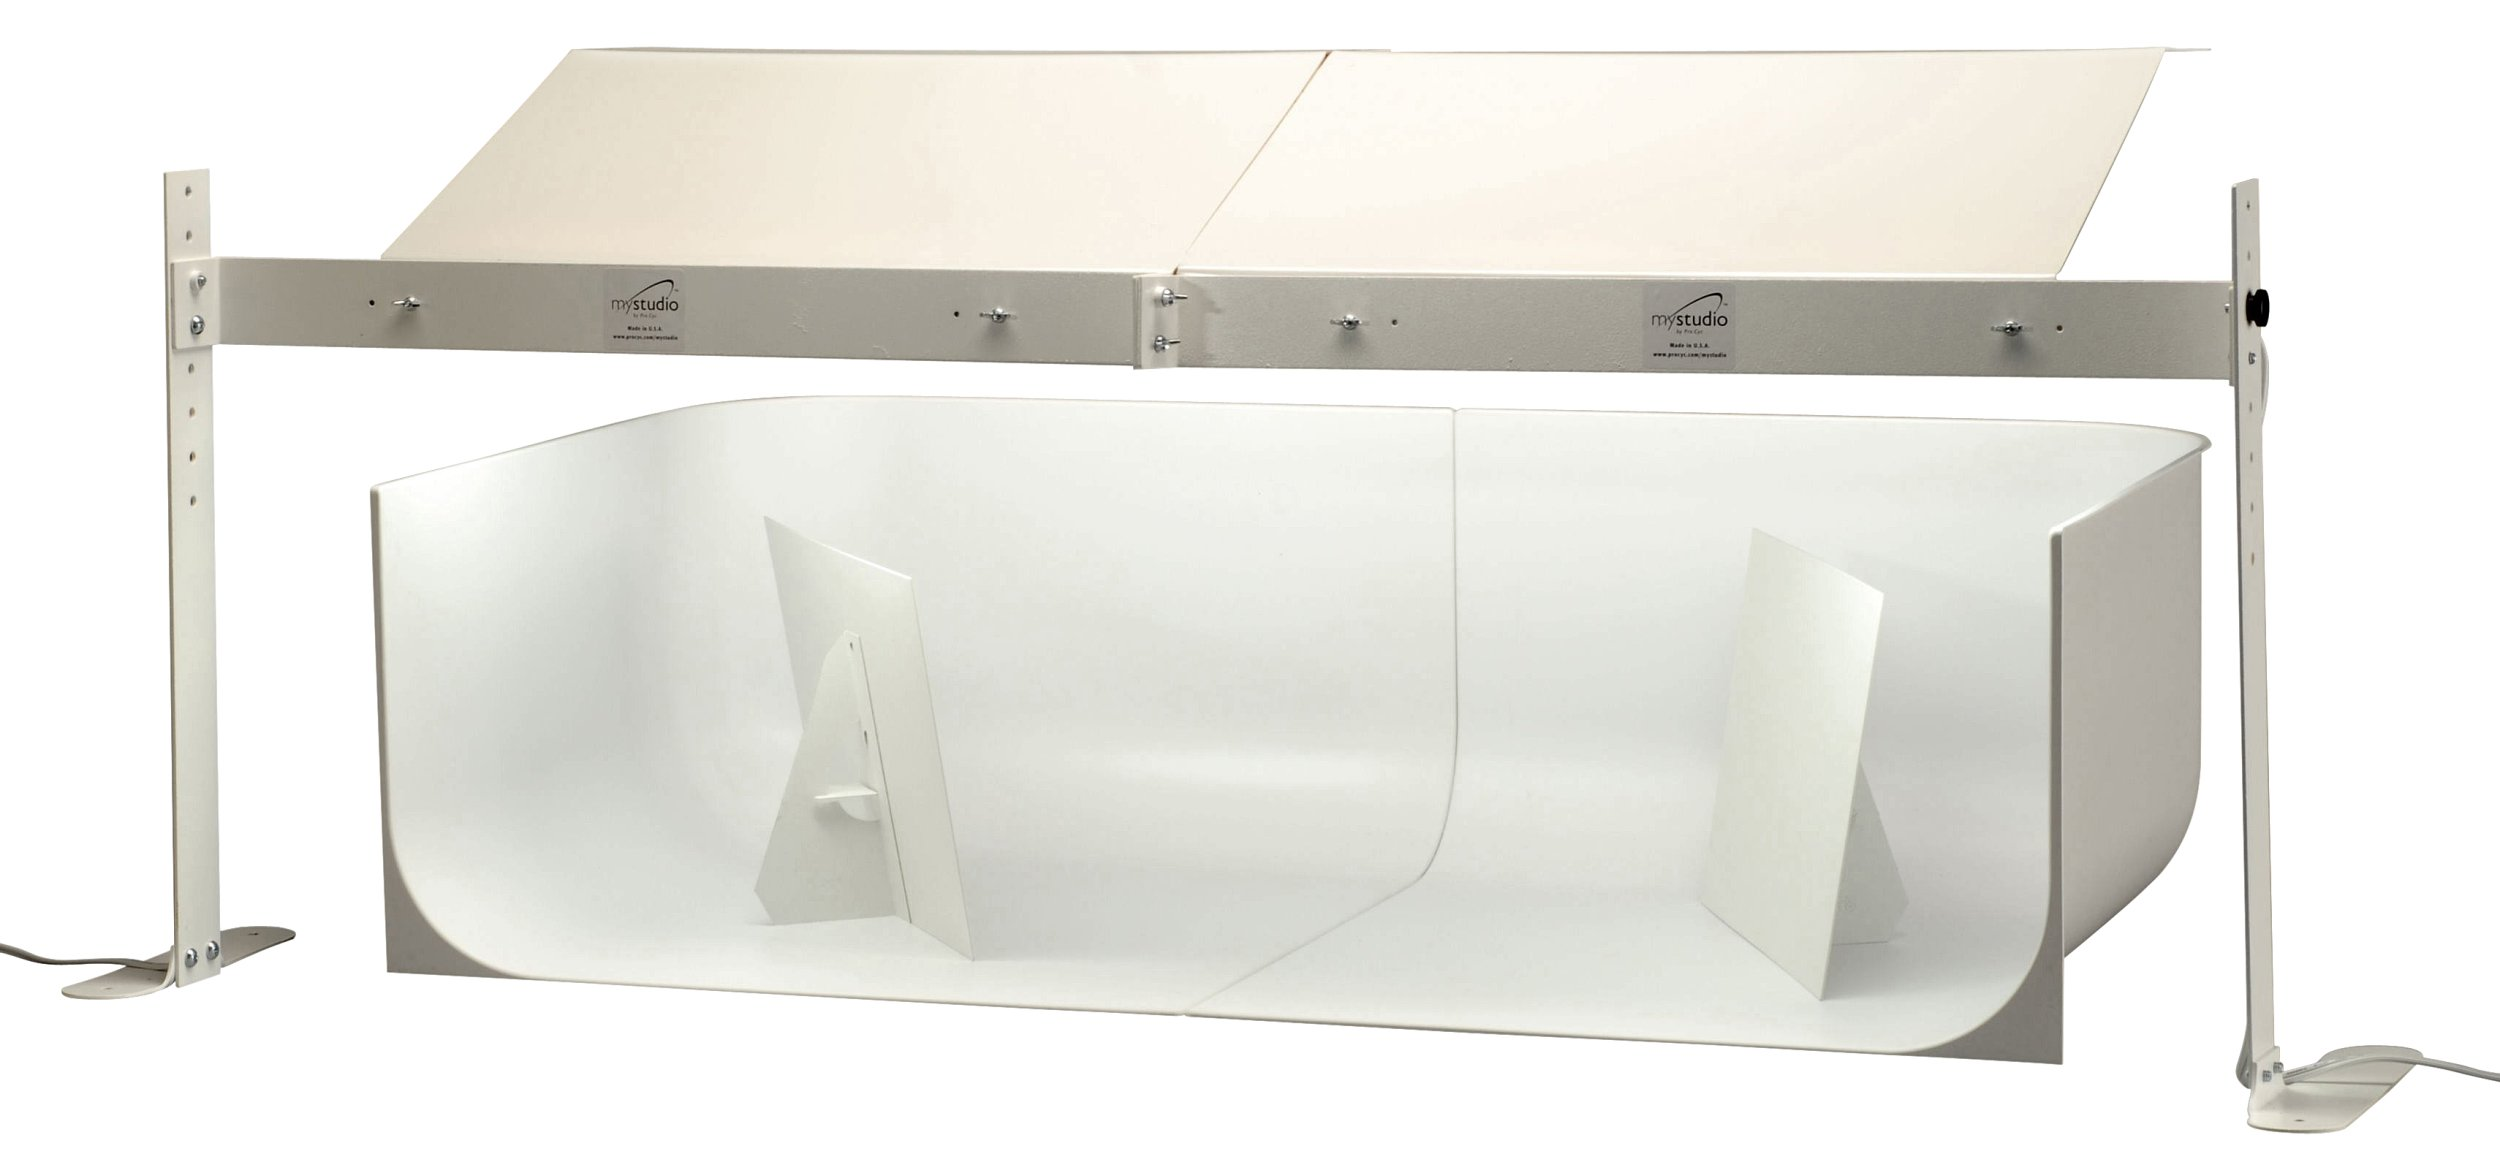 MyStudio MS20DEL Deluxe Table Top Photo Studio Lightbox Kit with 5000K Lighting and Dual 20'' x 20'' x 12'' Seamless Backgrounds for Product Photography 40x20x12 inches by MyStudio